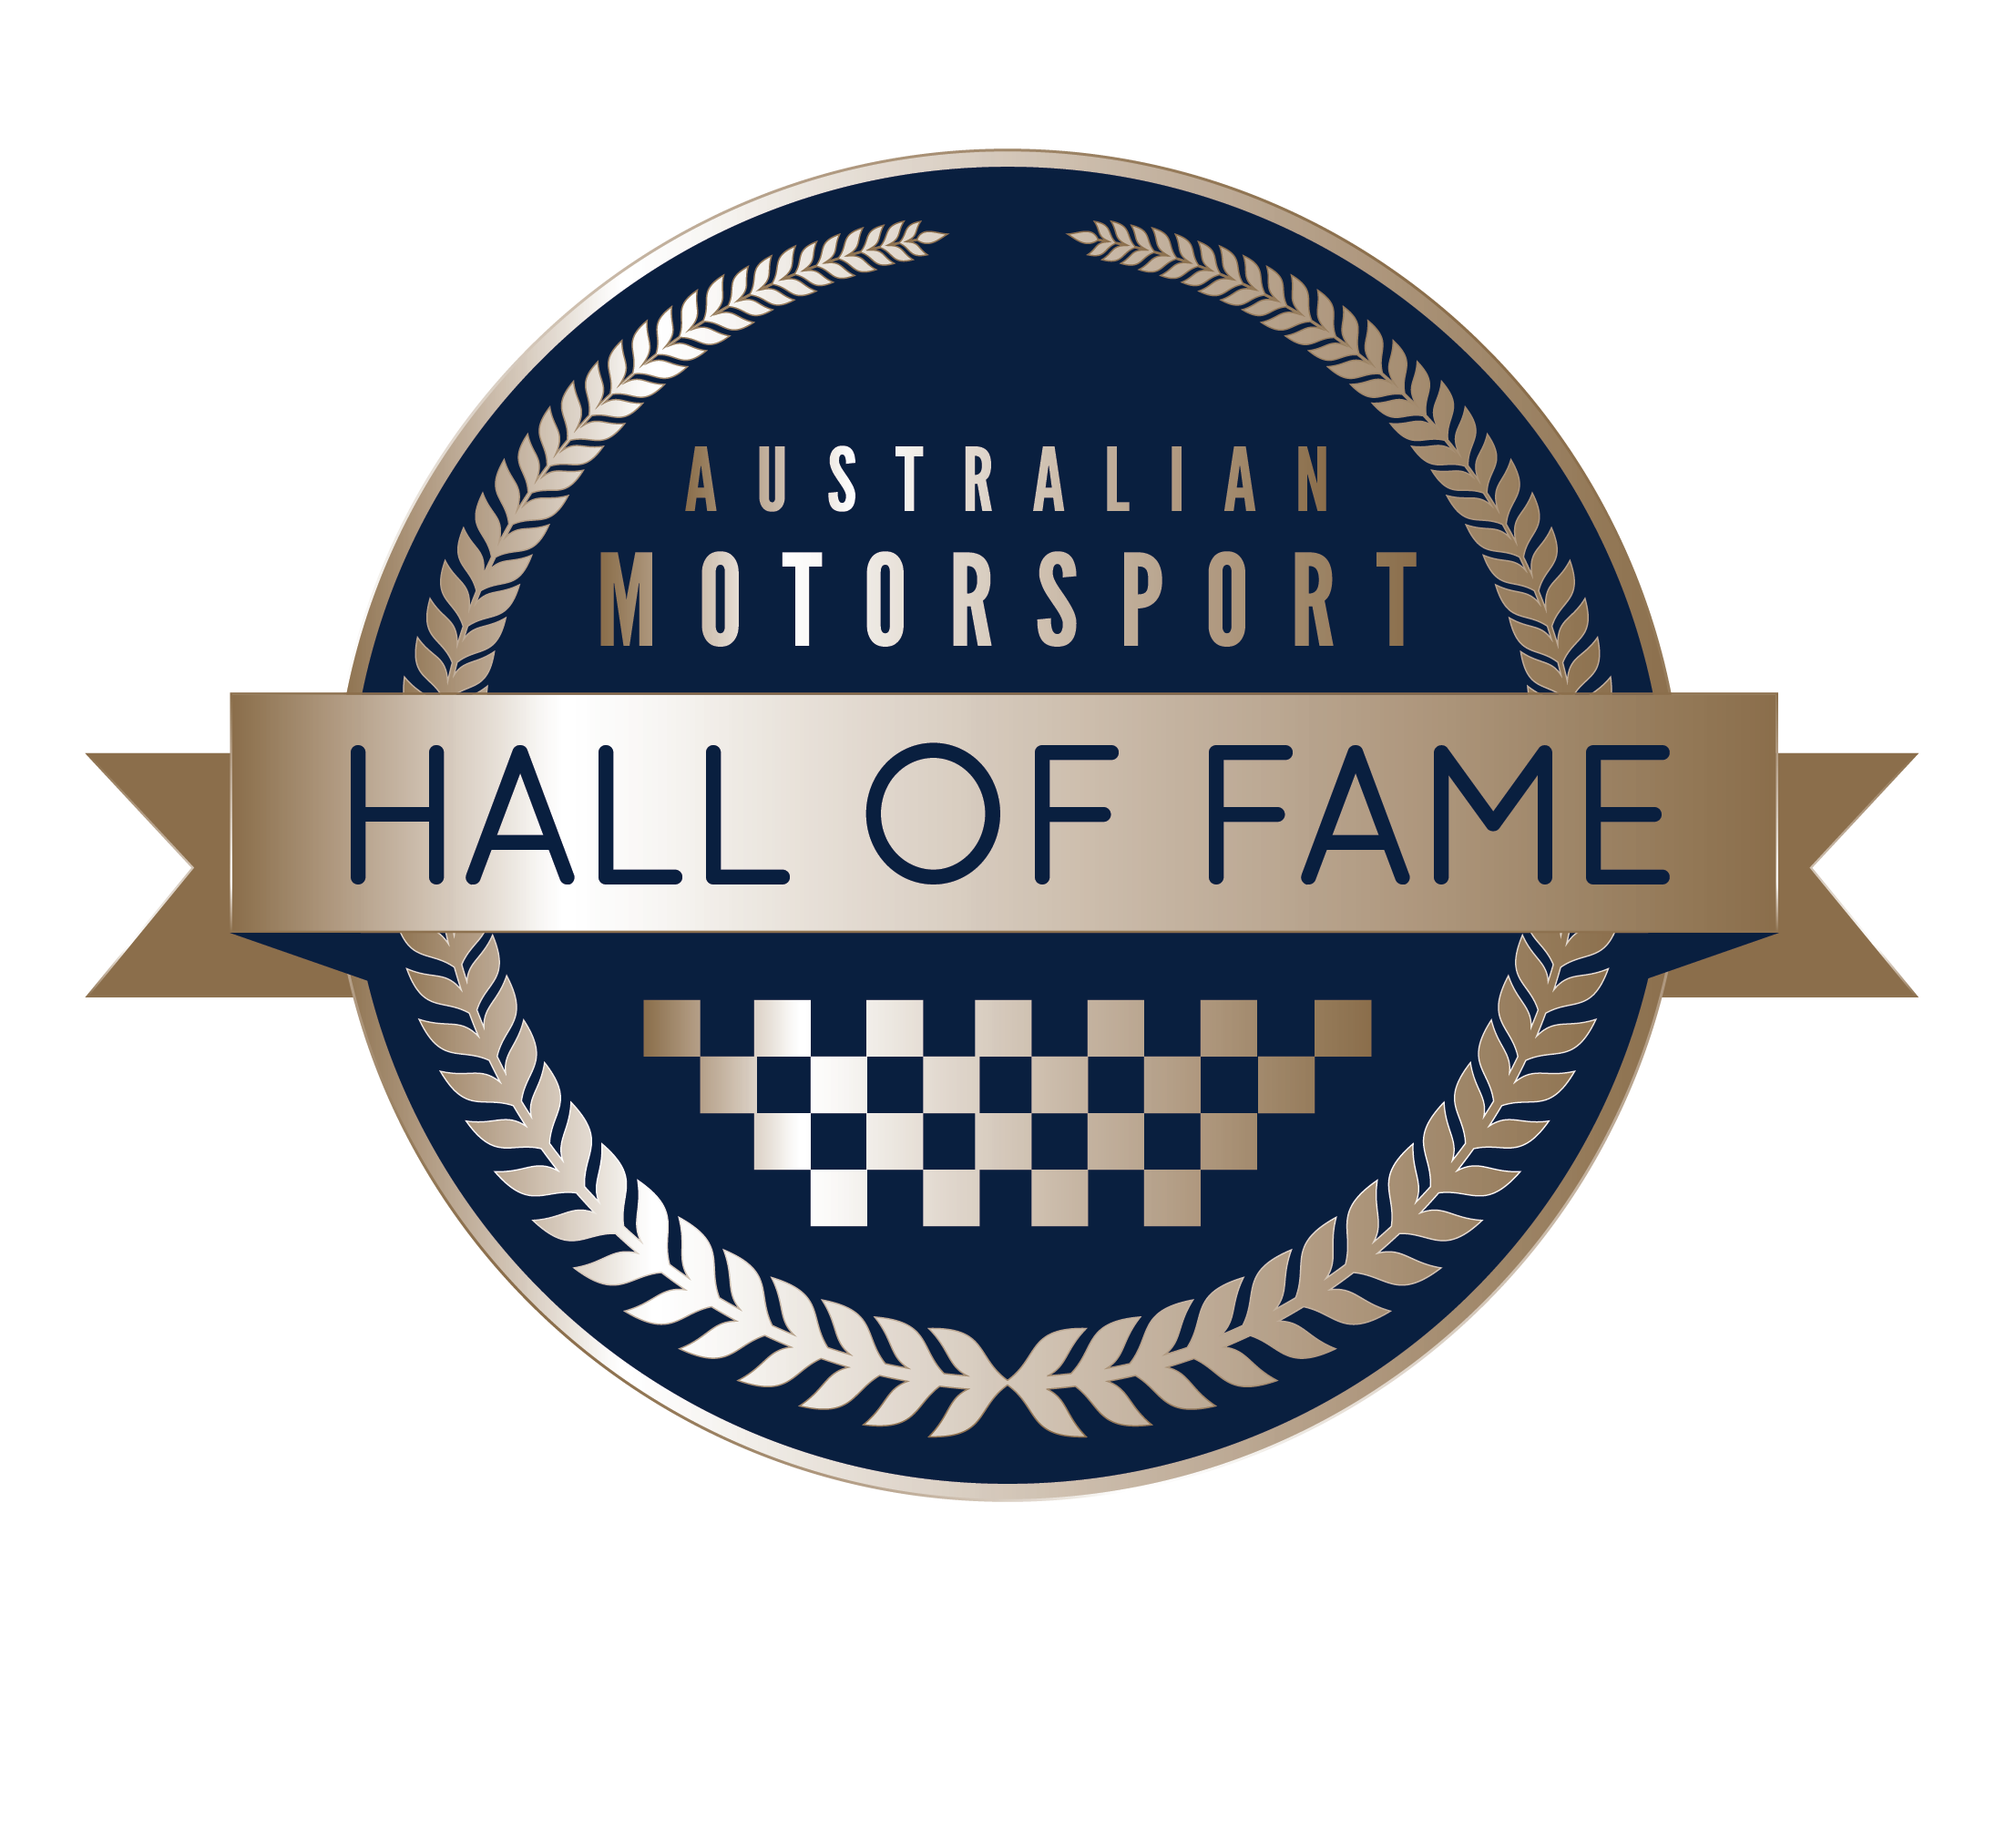 Australian Motor Sport Hall of Fame - Presented by Famous Insurance